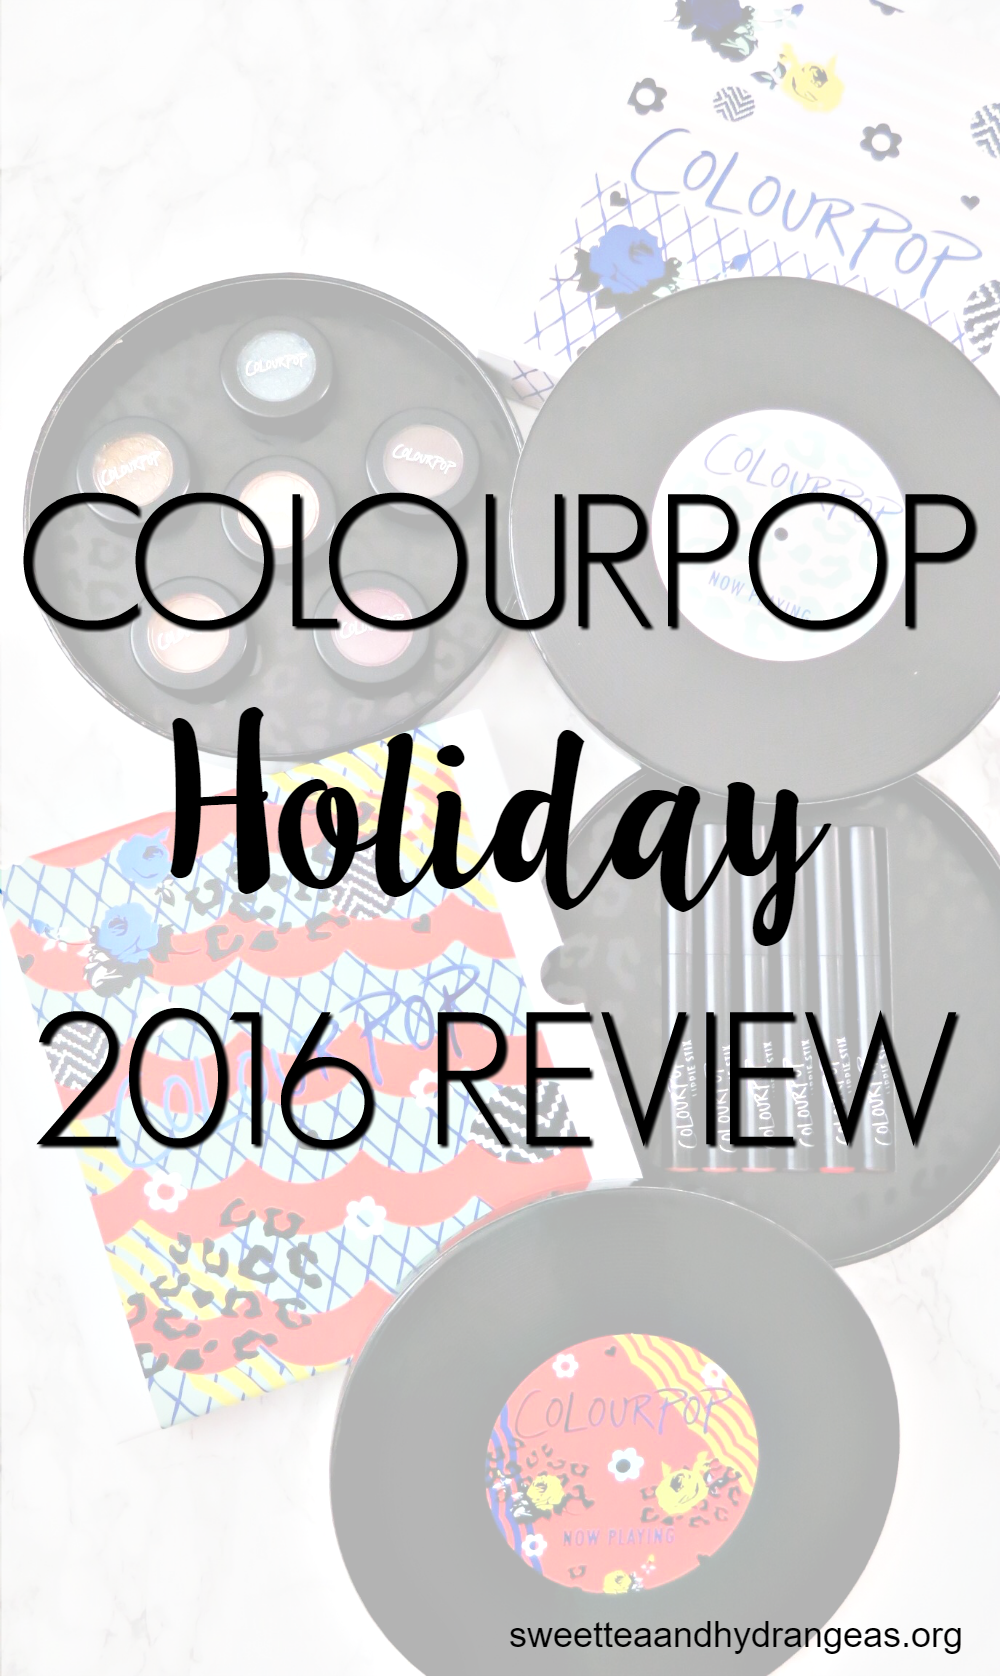 ColourPop Holiday 2016 Review